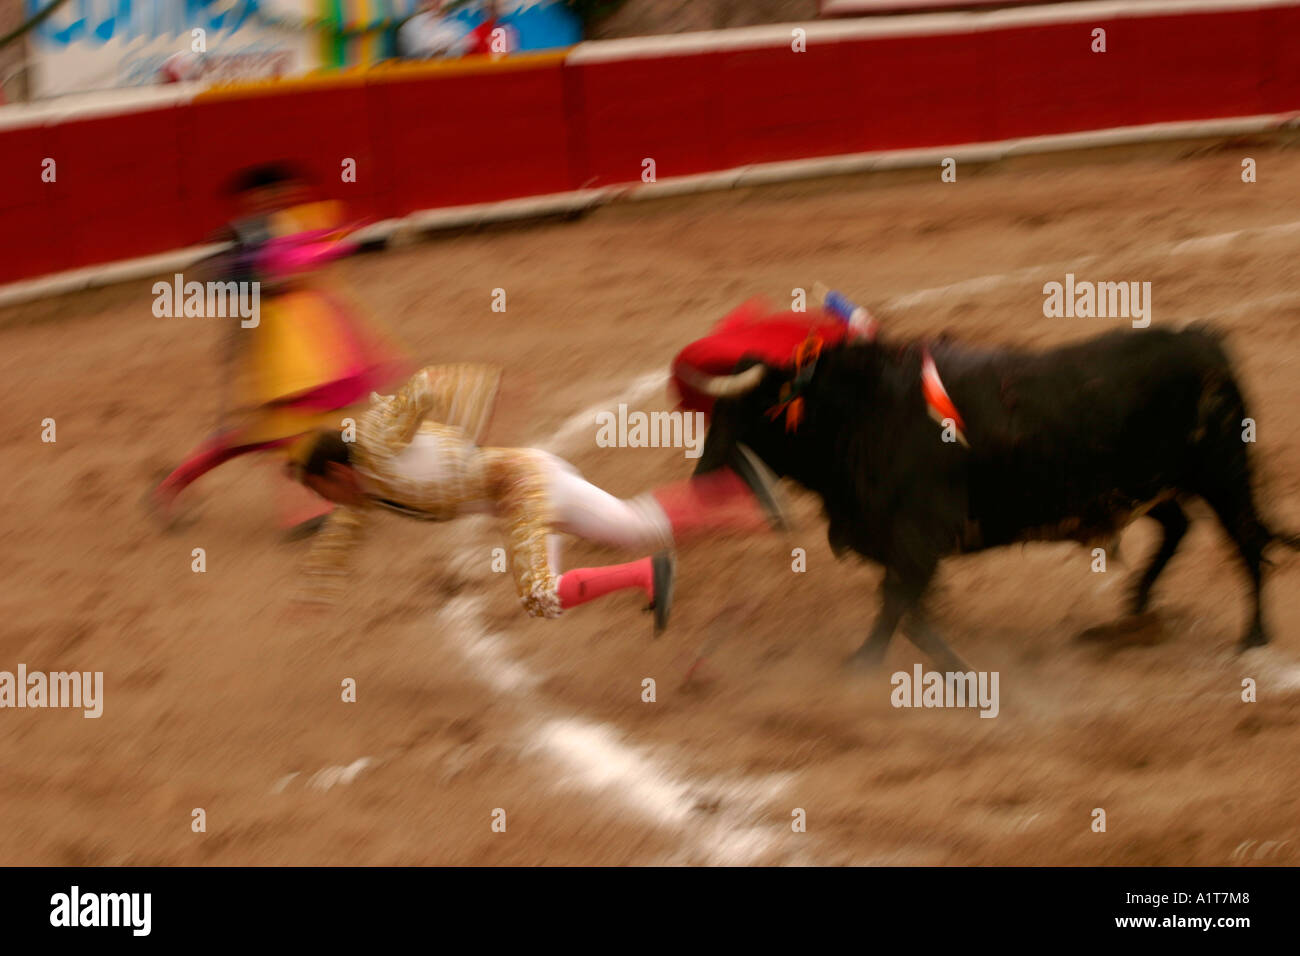 A bullfighter in Mexico is tossed aside during a fight - Stock Image